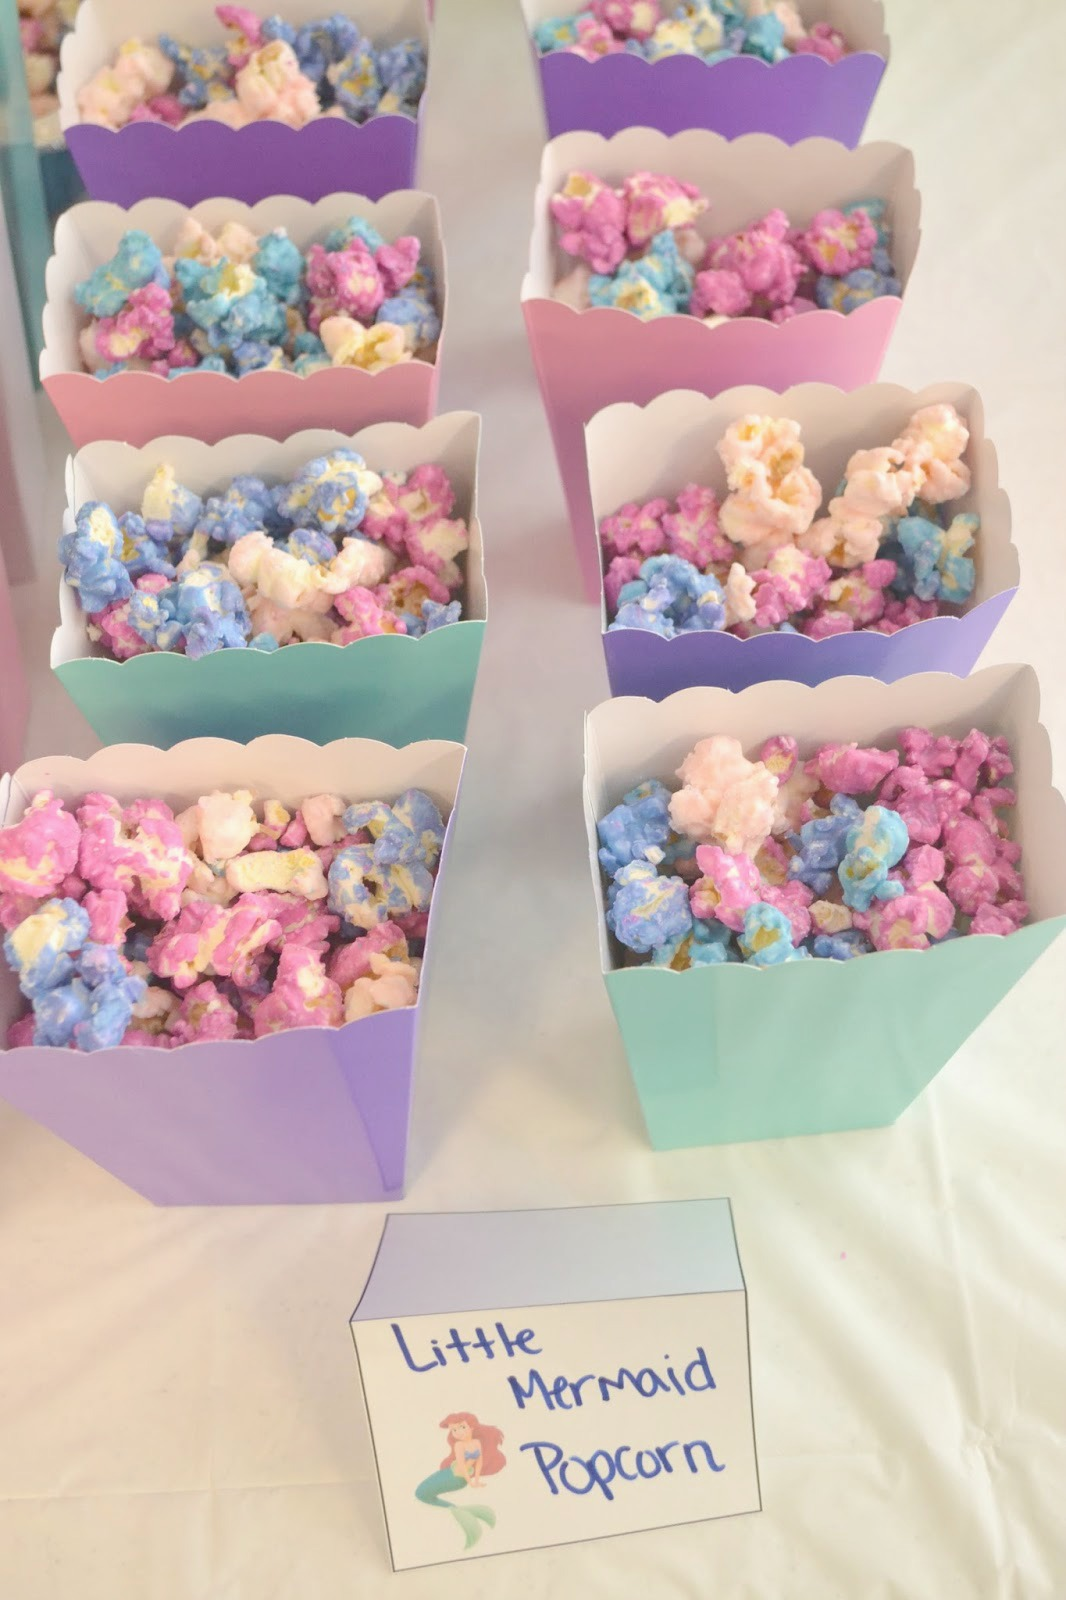 Little Mermaid popcorn, Coral pieces popcorn for mermaid party, mermaid party food, Mermaid popcorn, Mermaid coral pieces popcorn, Little Mermaid Birthday Party Ideas, Little Mermaid Birthday Party, Little Mermaid Birthday, Little Mermaid party food, little mermaid themed party ideas, Little Mermaid Birthday Party food, Little Mermaid Birthday Party decorations, goodie bag ideas for little mermaid party